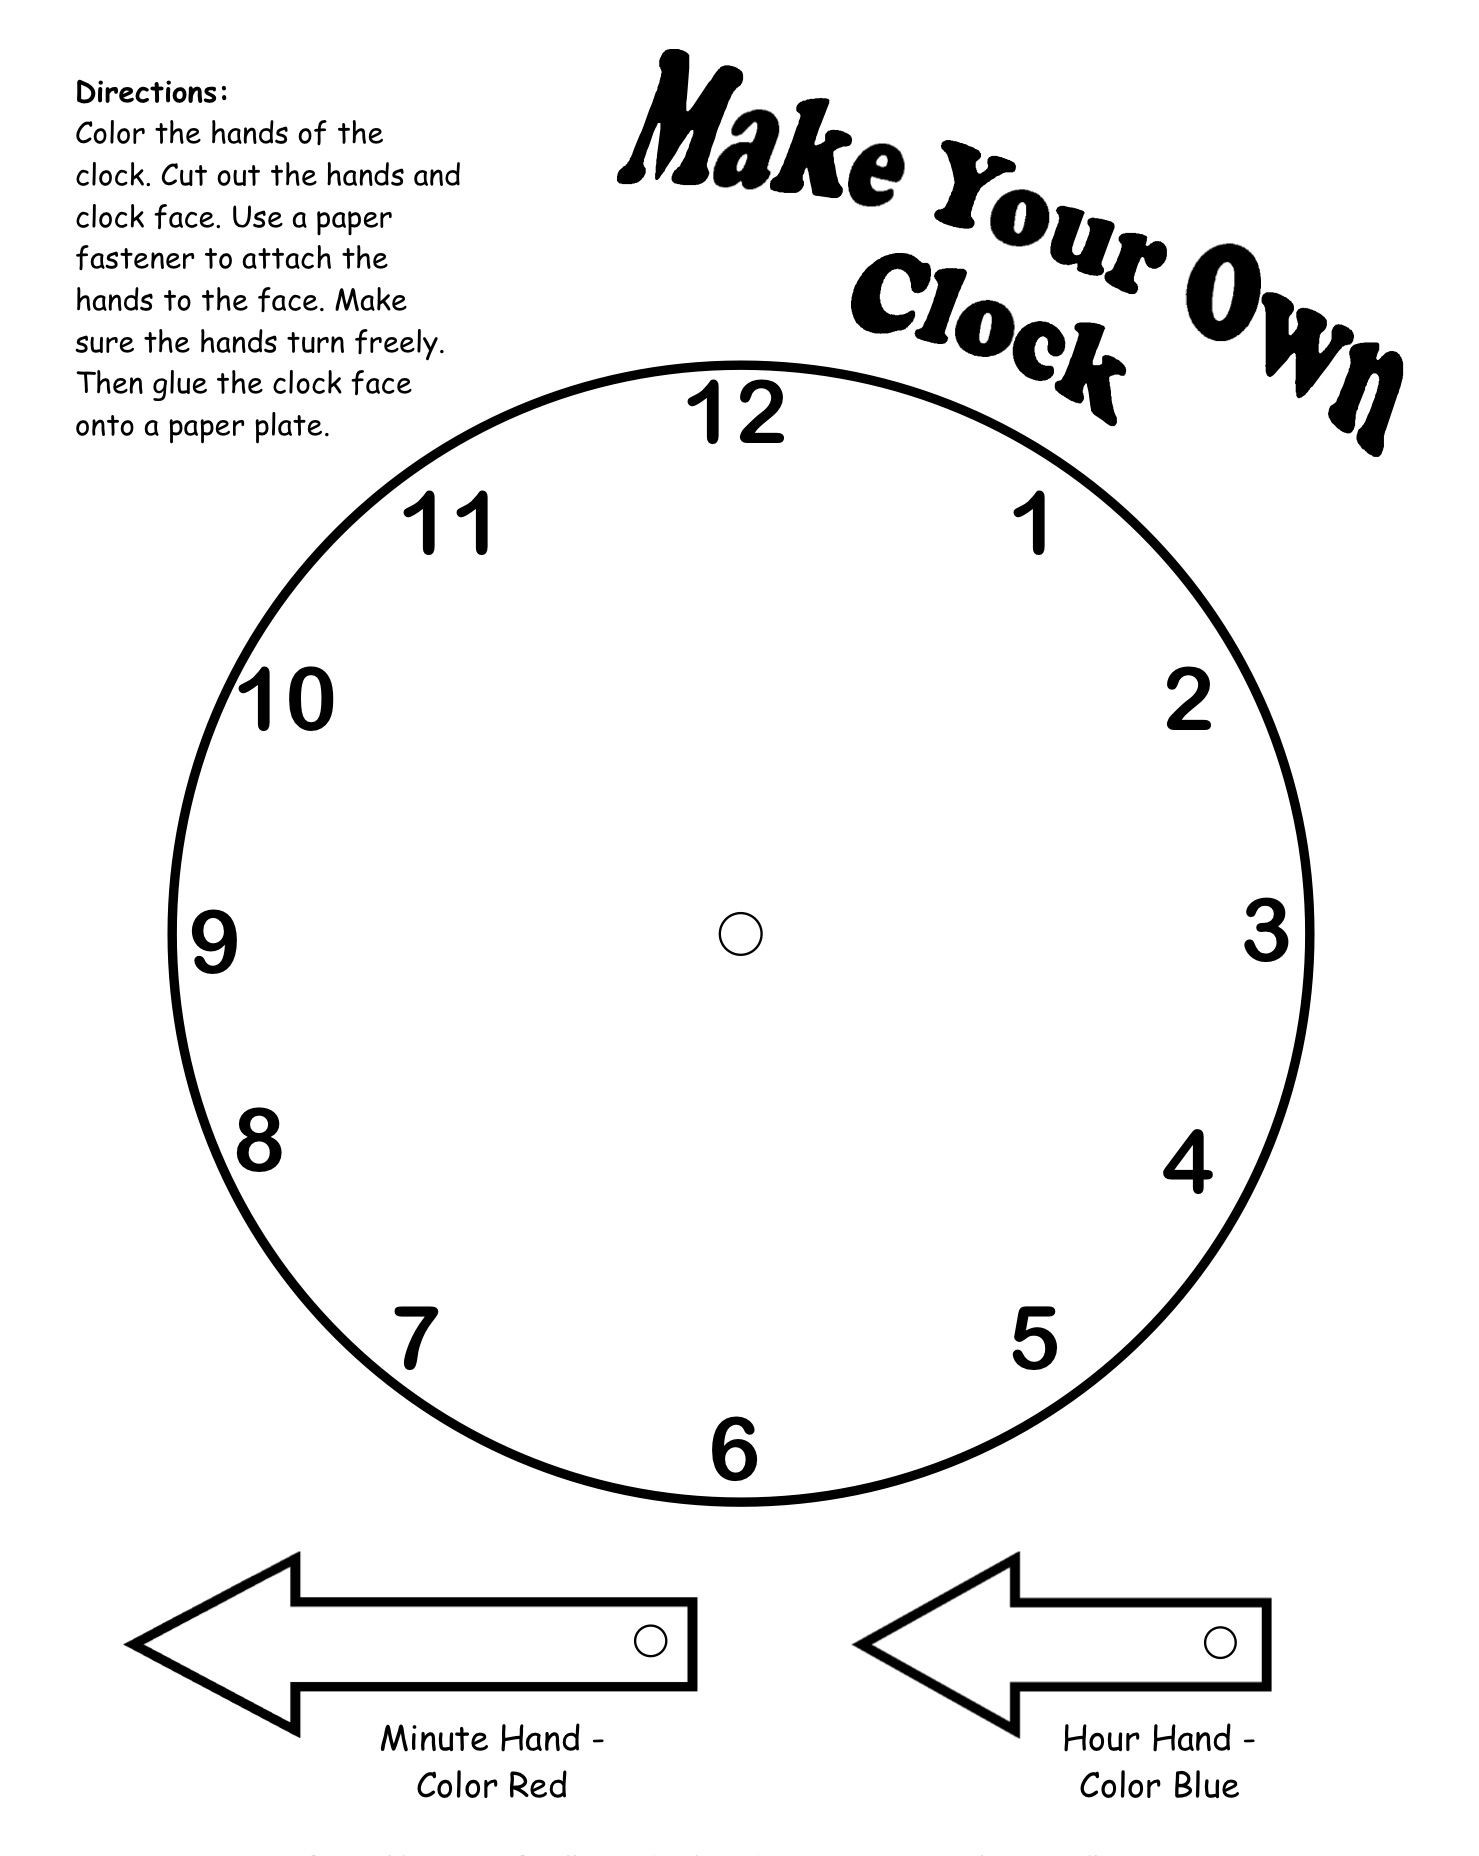 Make your own clock printable